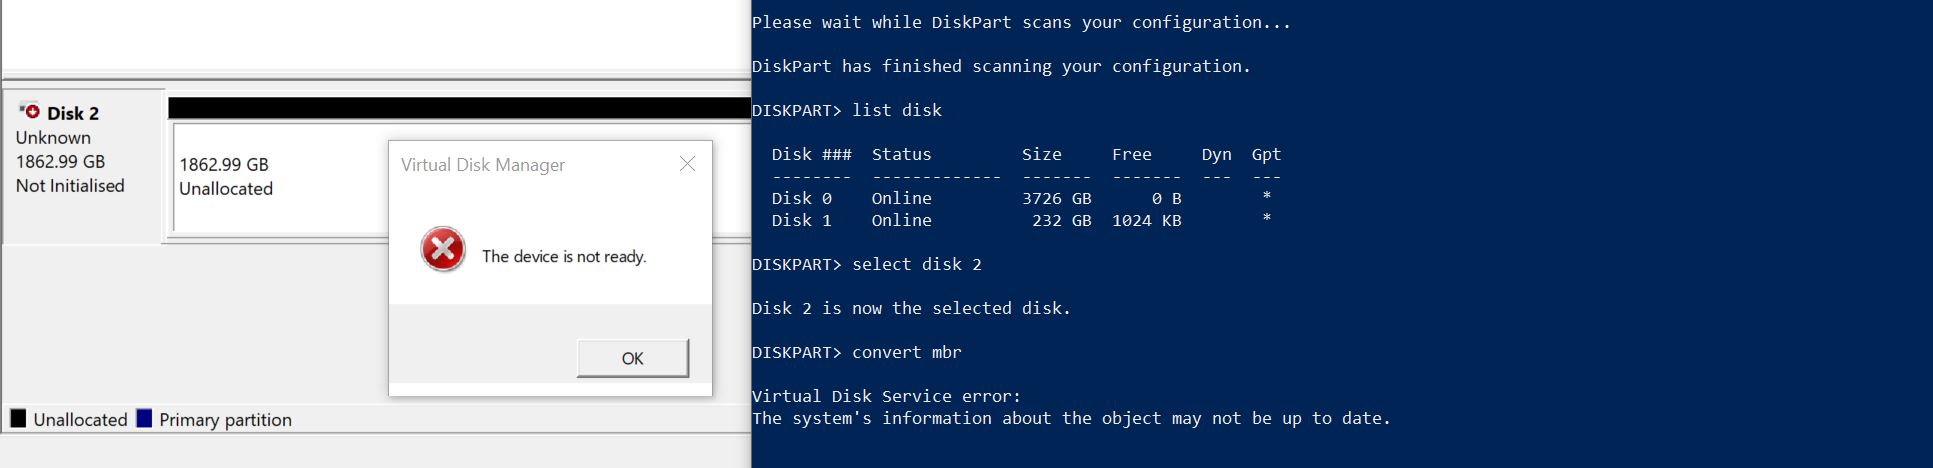 Disk Cannot Be Initialised - Device Isn't Ready d22122b2-3b60-4307-a5ba-8a54e8778658?upload=true.jpg